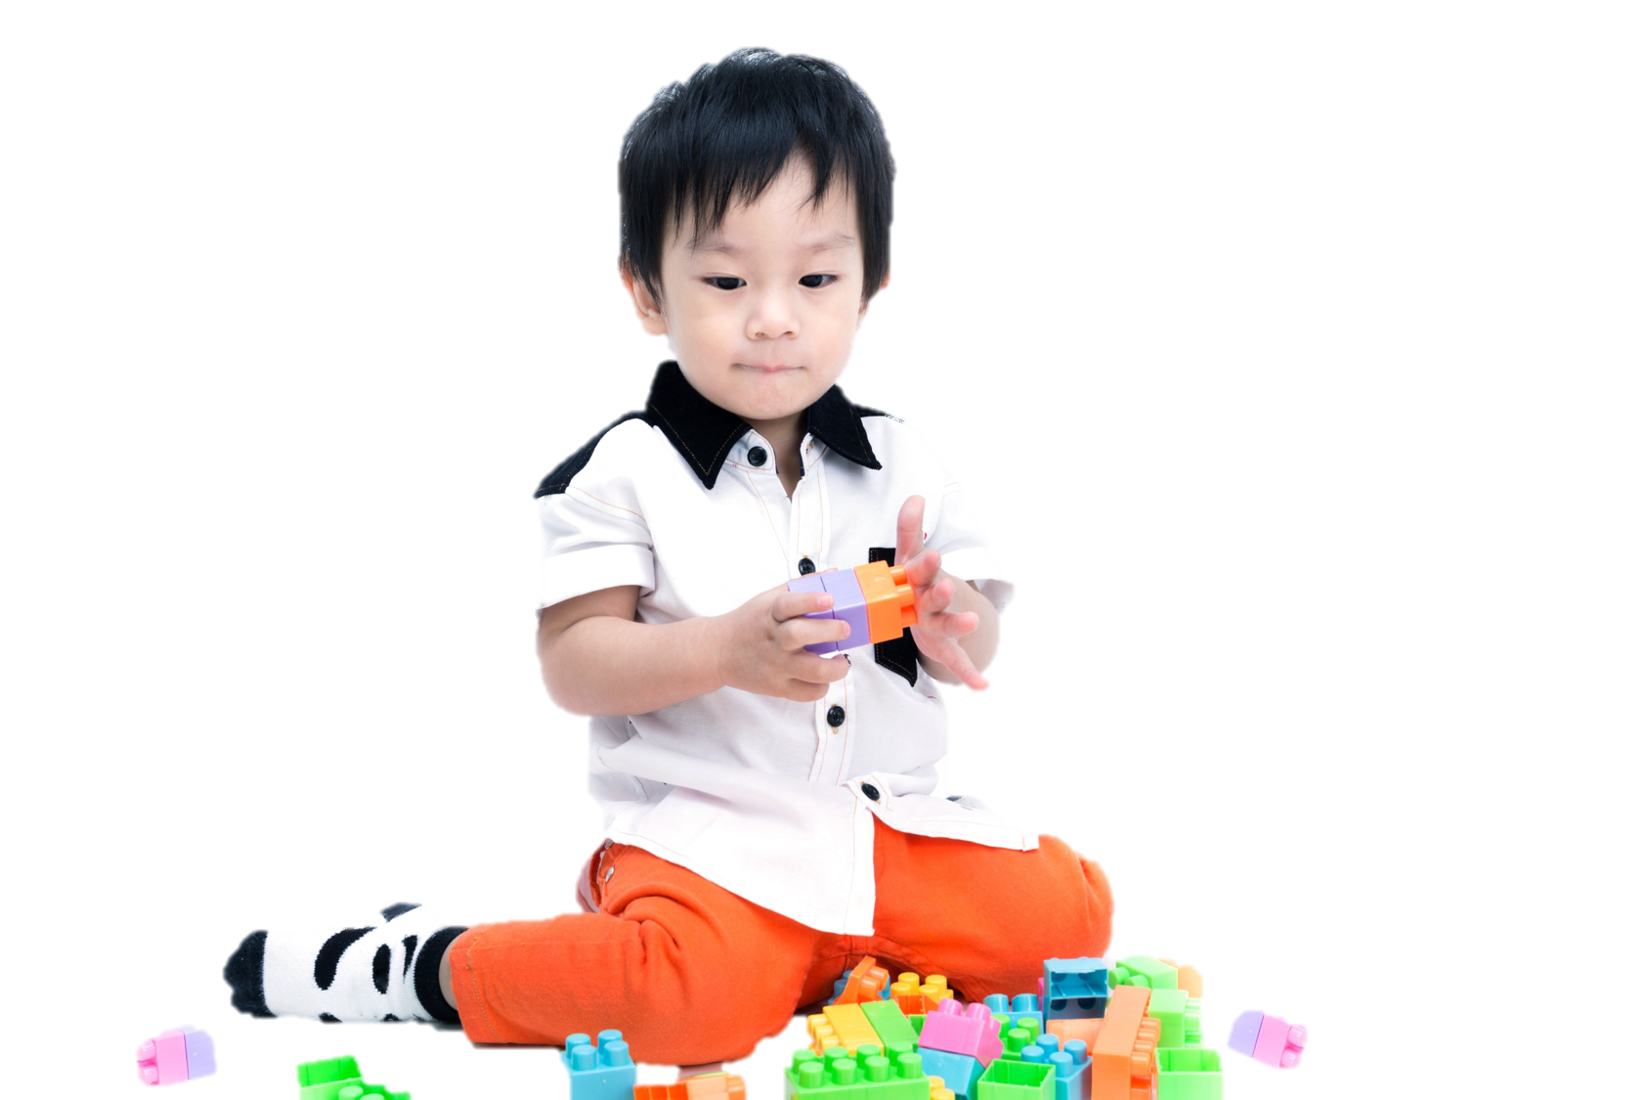 Child Care Center Png image #42457